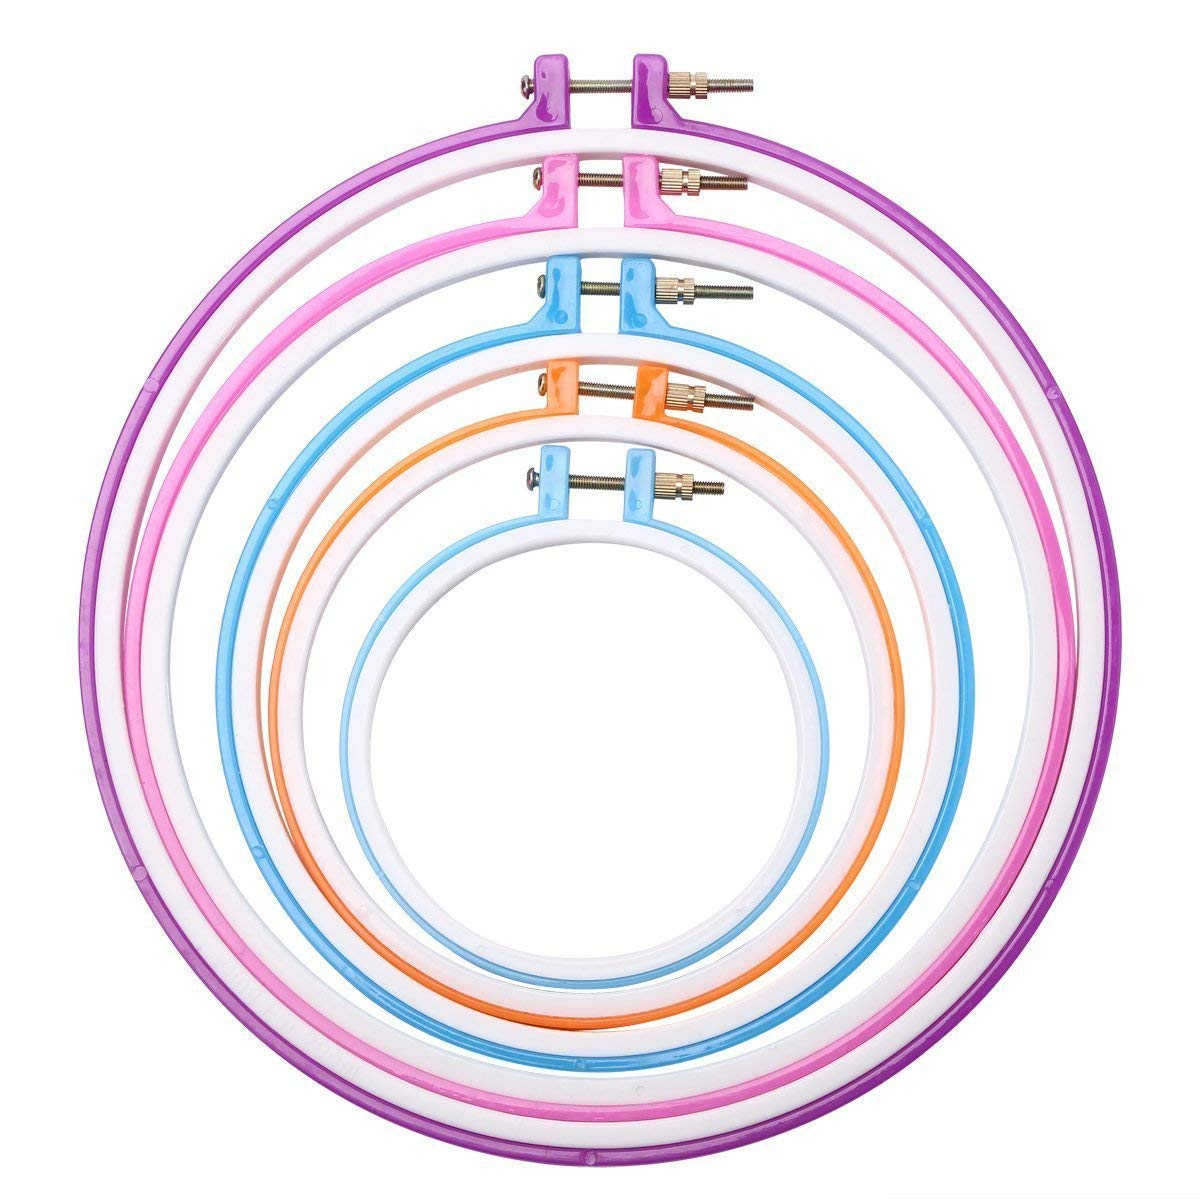 Happy Shop 5 Pieces Embroidery Hoops Plastic Cross Stitch Hoop Round Embroidery Circle 5 inch to 11 inch